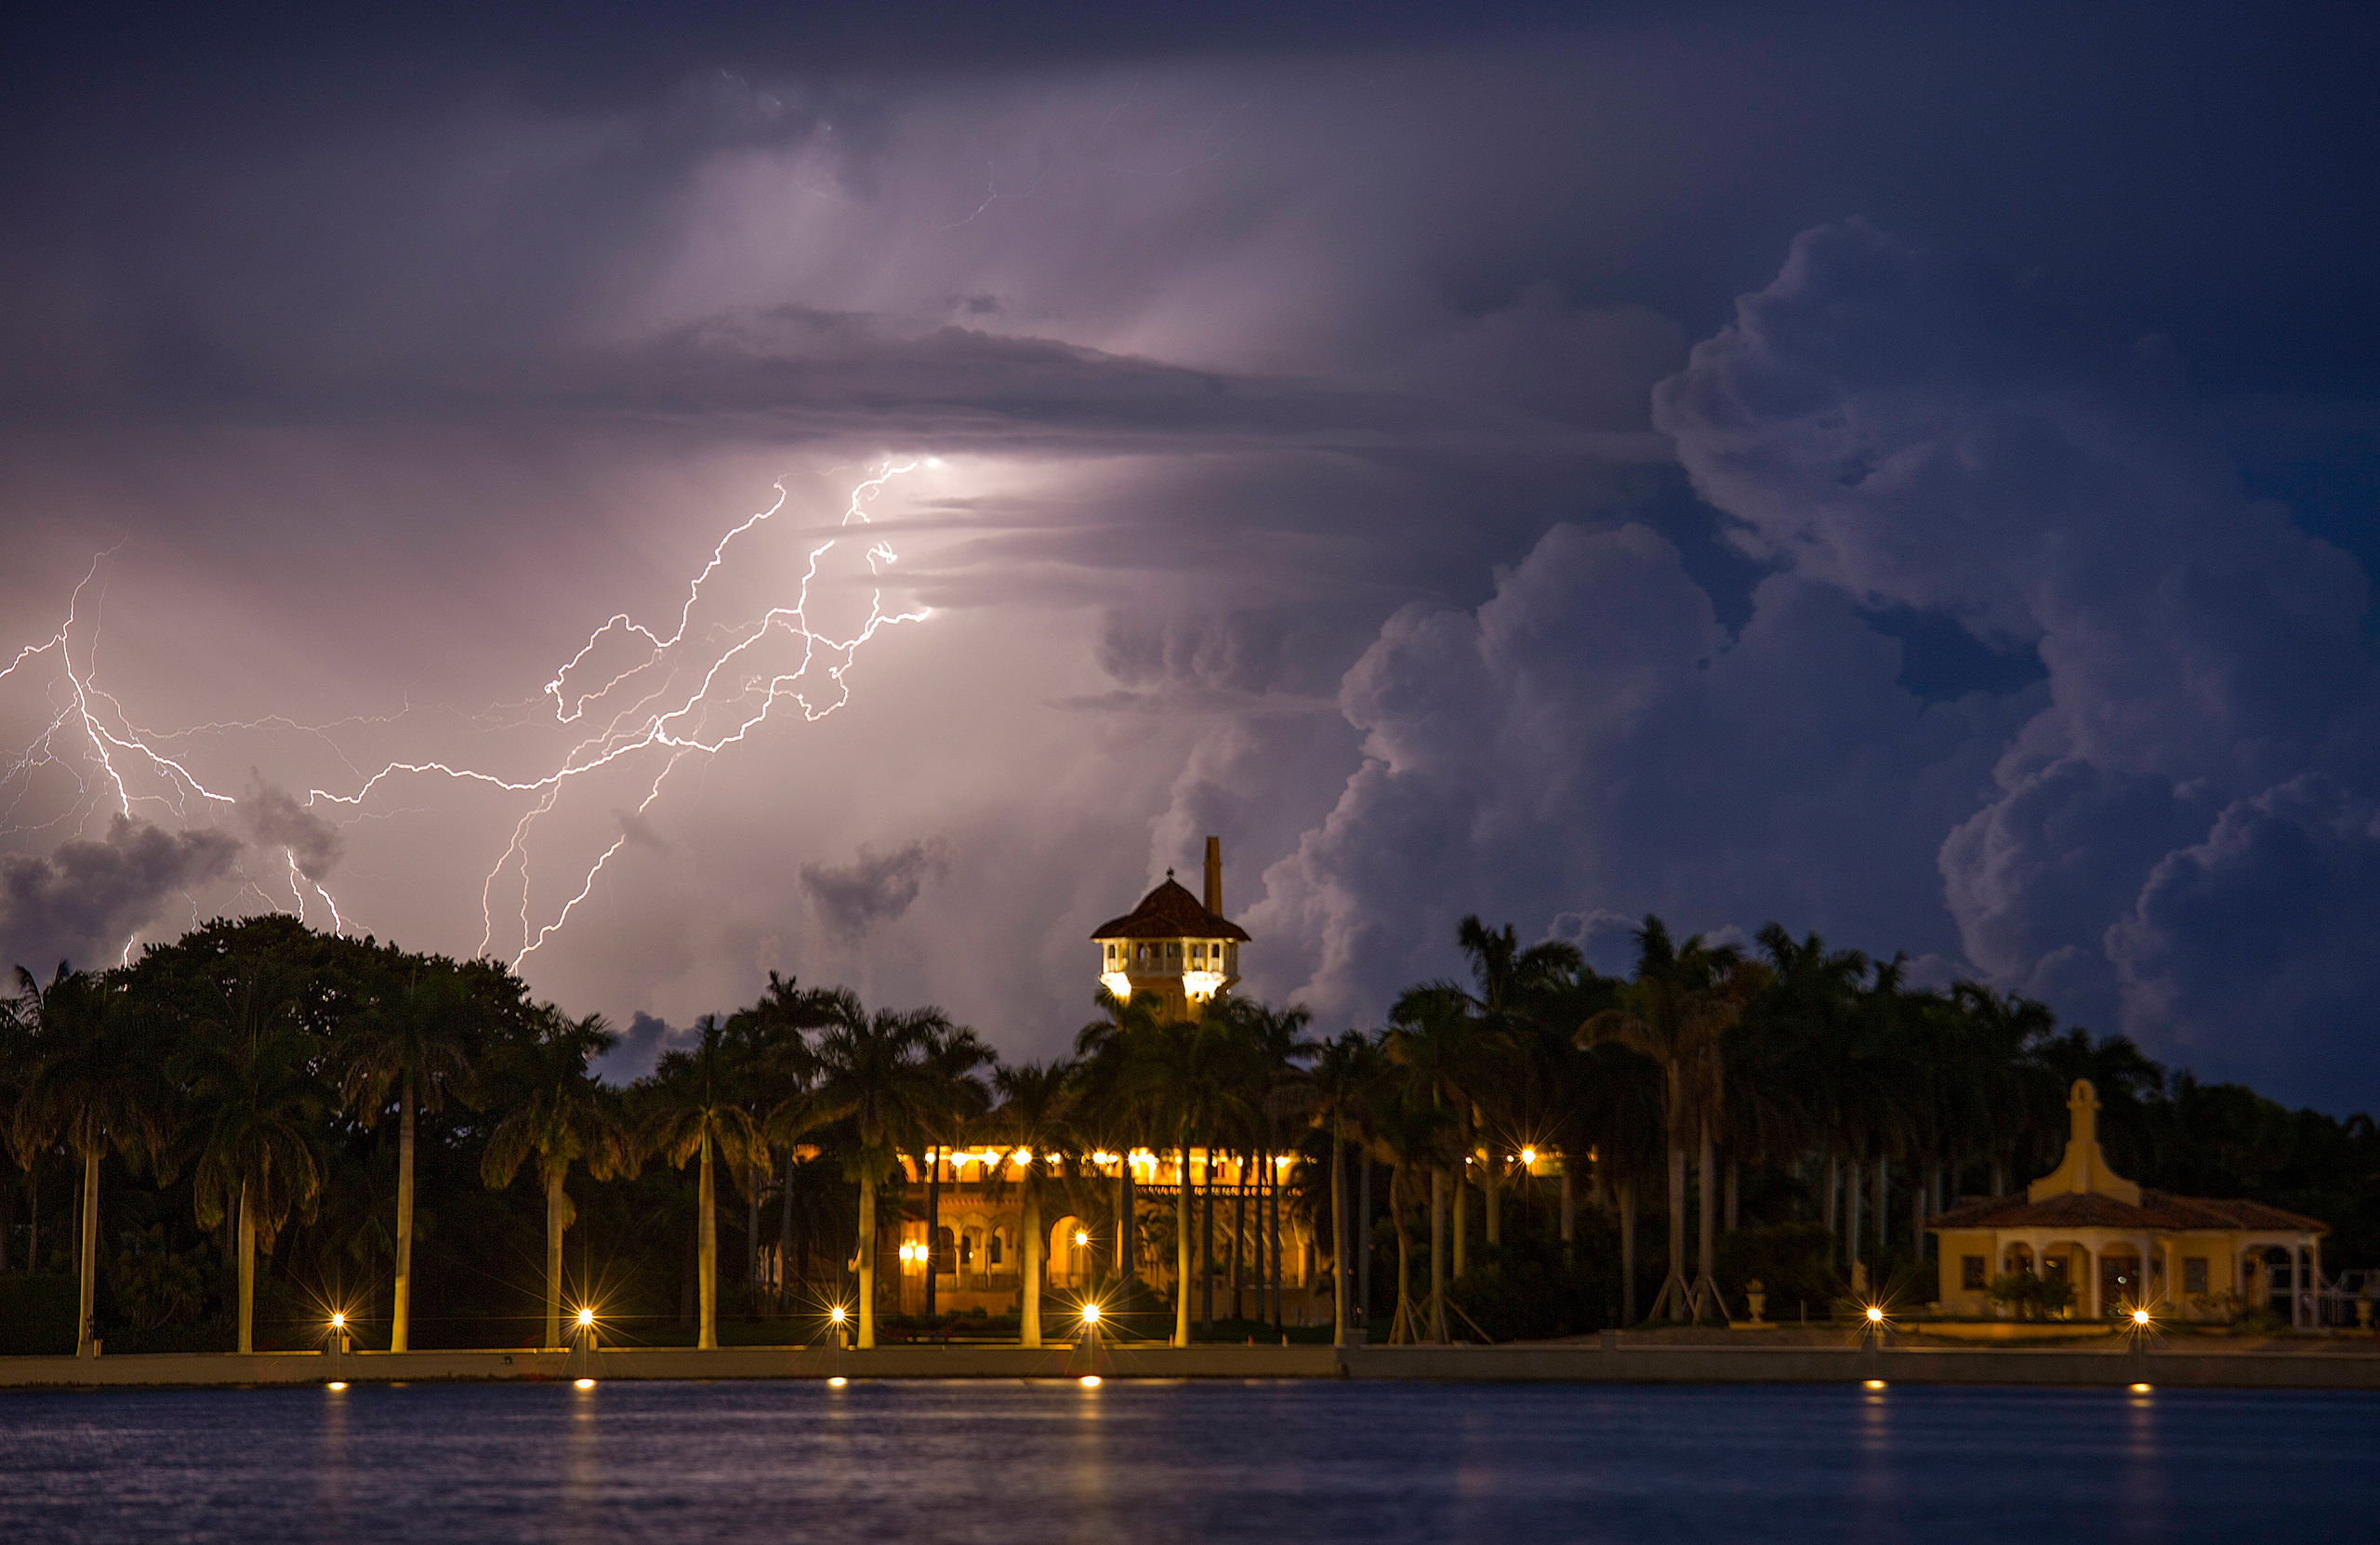 Lightning flashes in the sky over Mar-a-Lago on July 30, 2015.